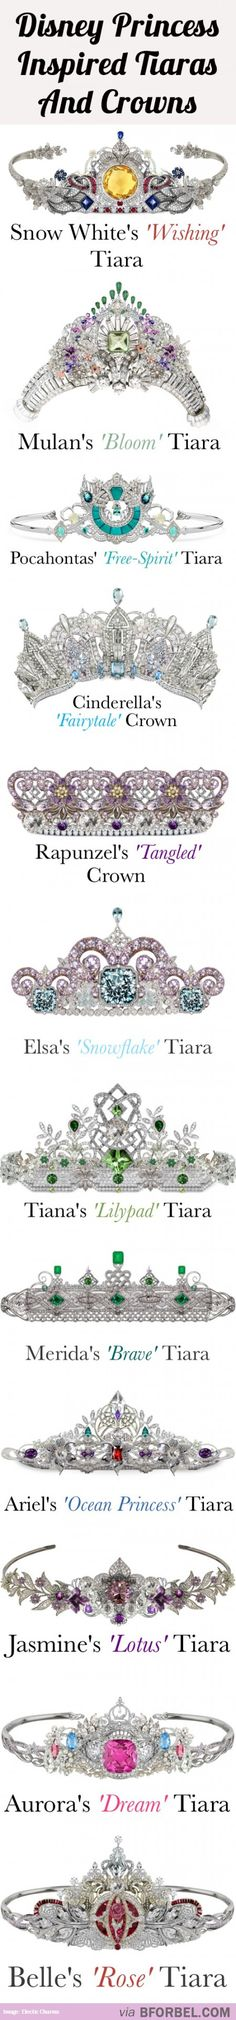 Disney Princess Tiaras And Crowns